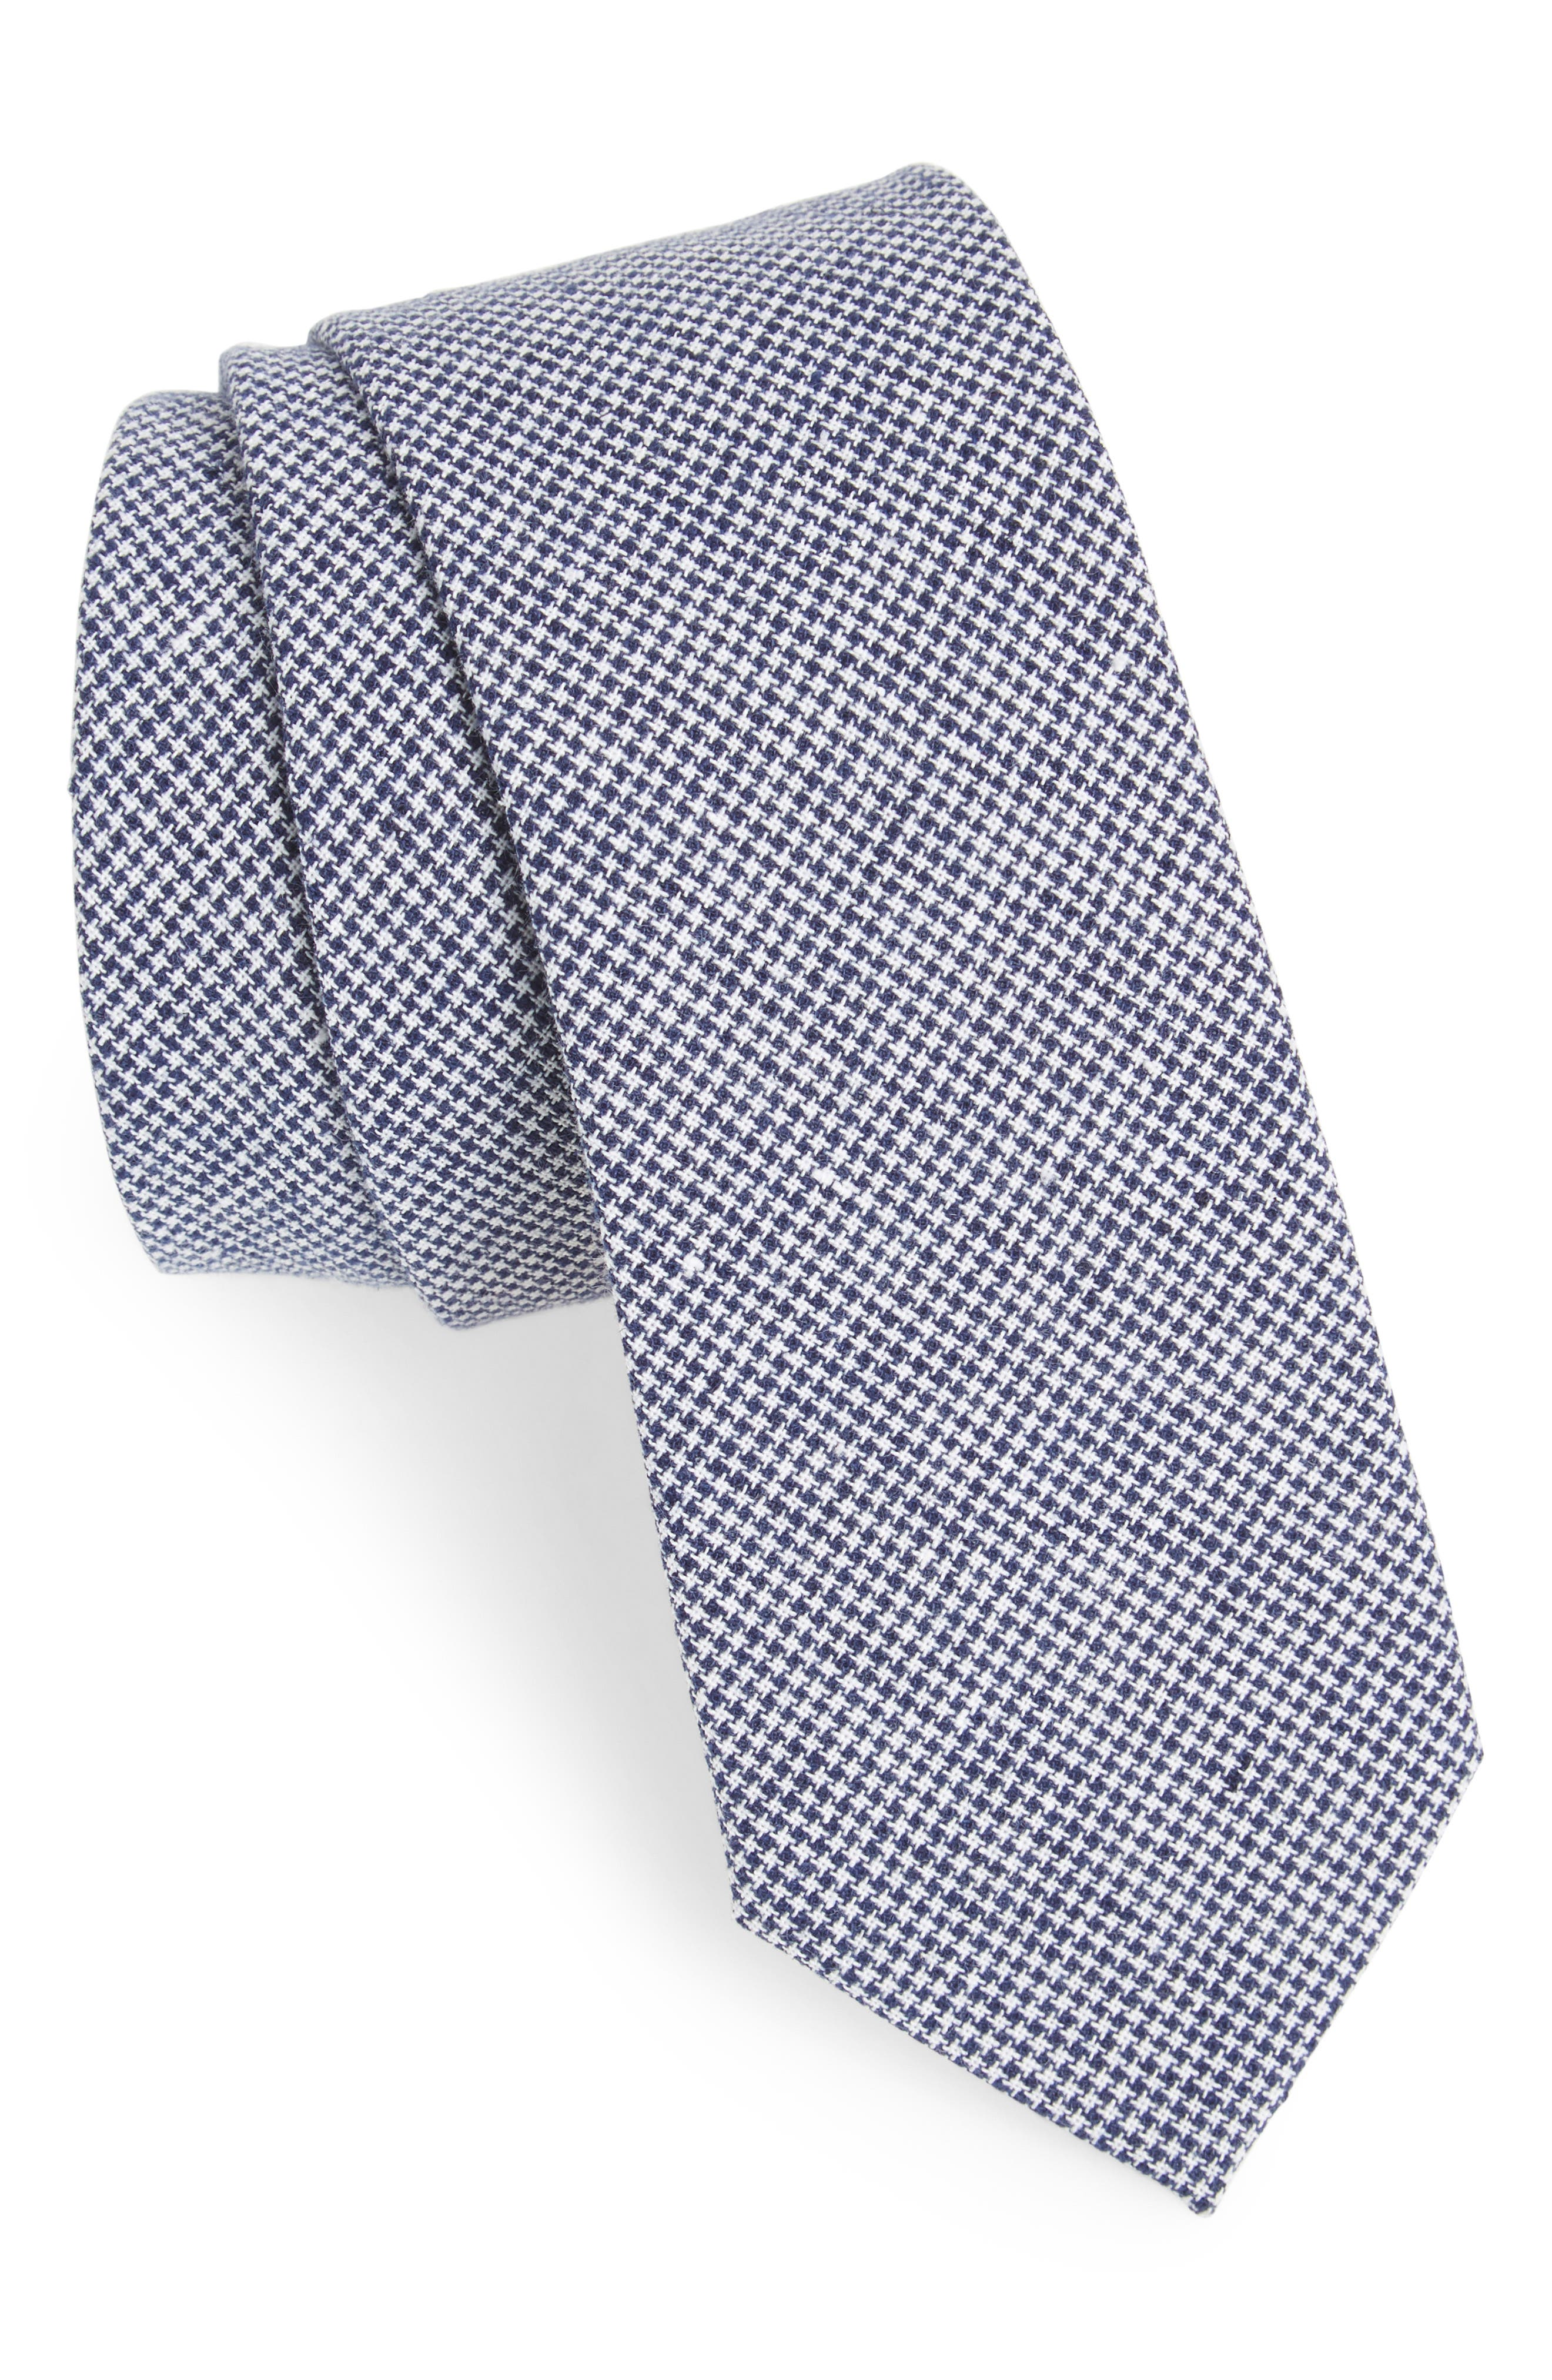 Ralph Houndstooth Cotton & Linen Tie,                         Main,                         color, 410